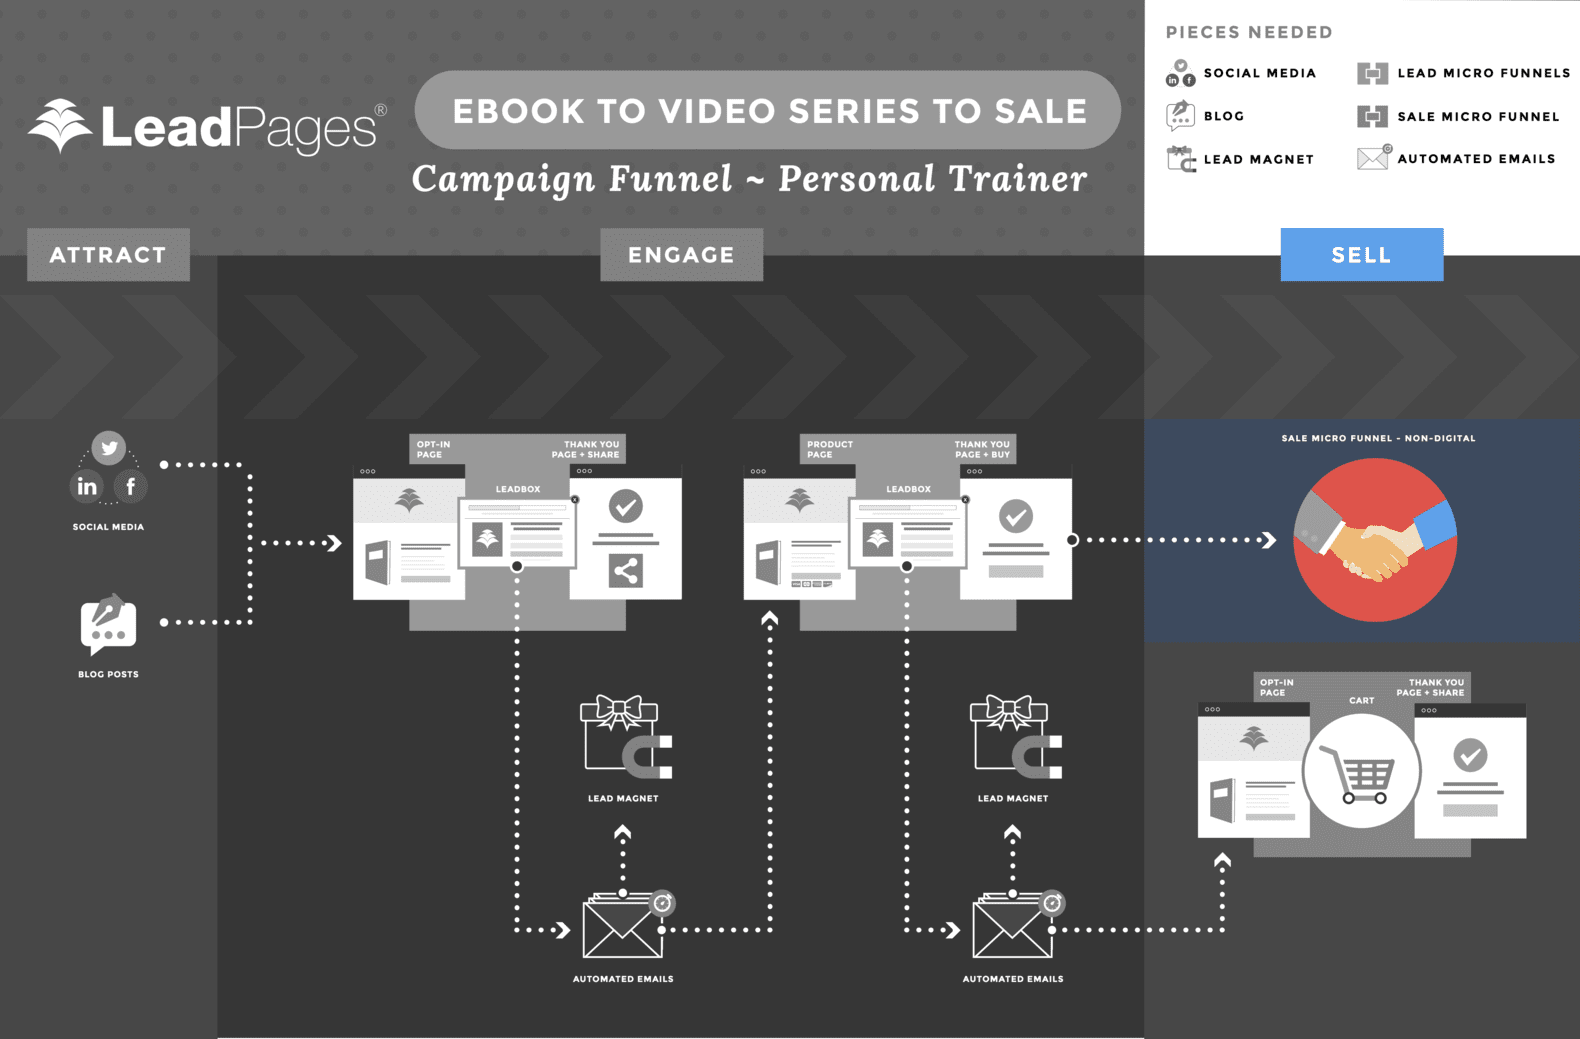 personal-trainer-funnel-sell-non-digital